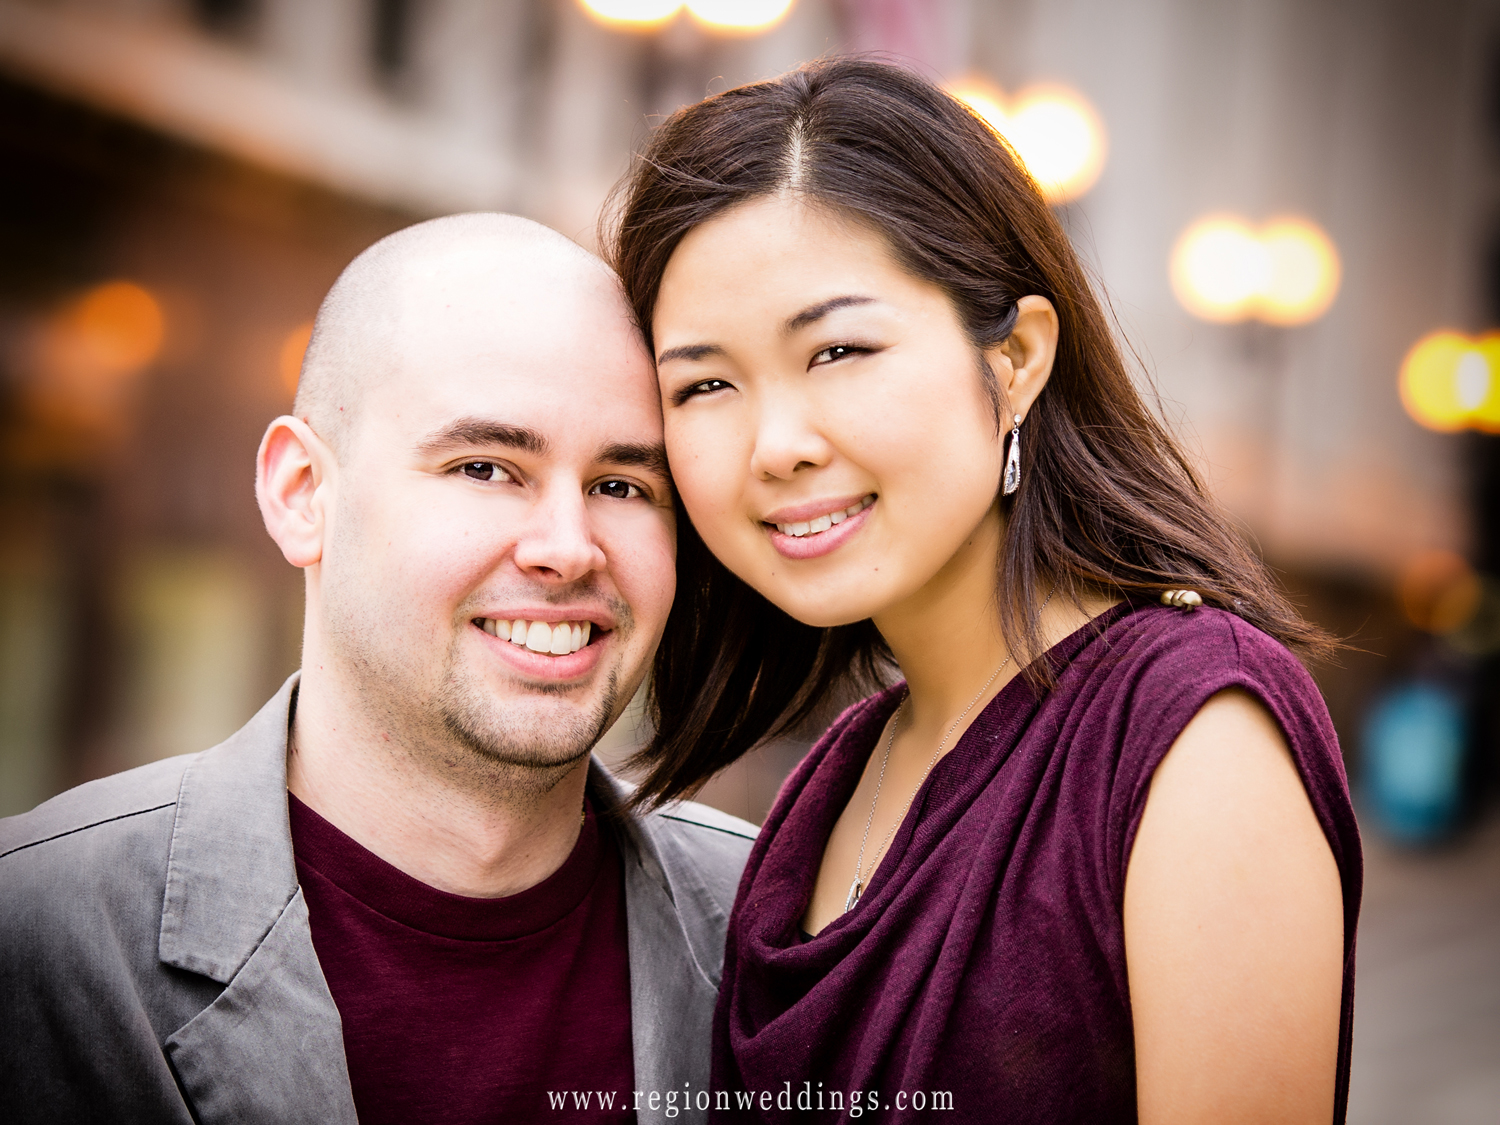 A cute couple poses on the streets of Chicago for a close up engagement portrait with street lights of the city in the background.